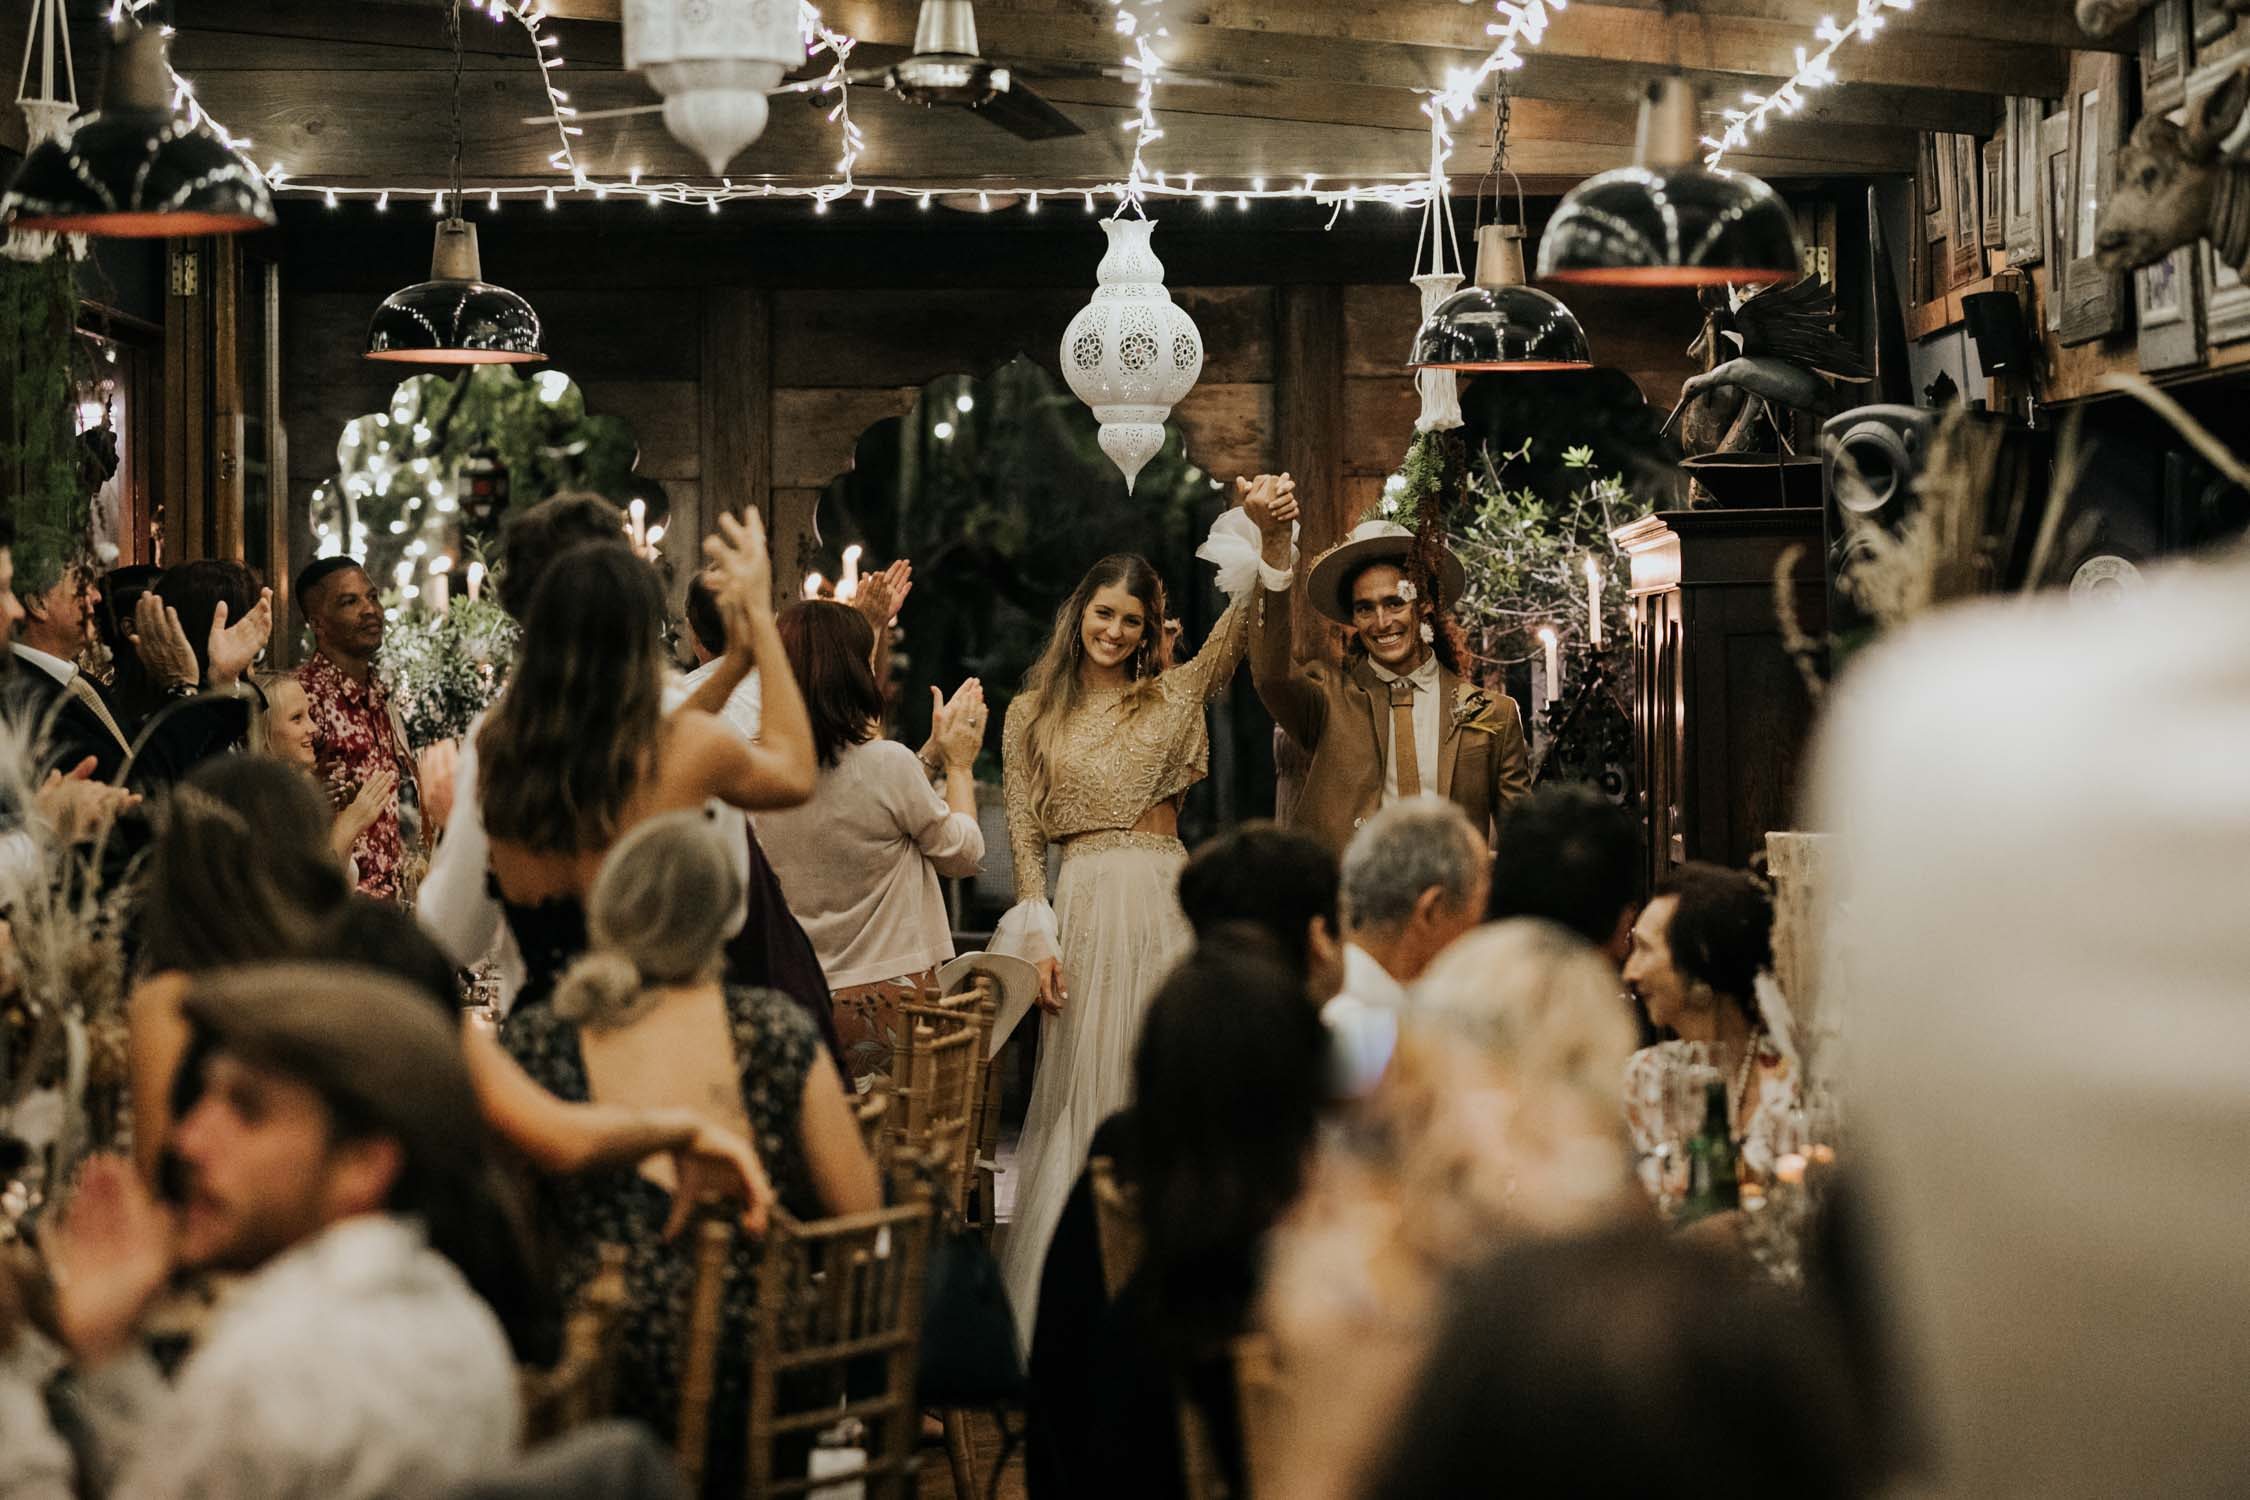 Guest cheer and clap as boho bride and groom enter their wedding reception